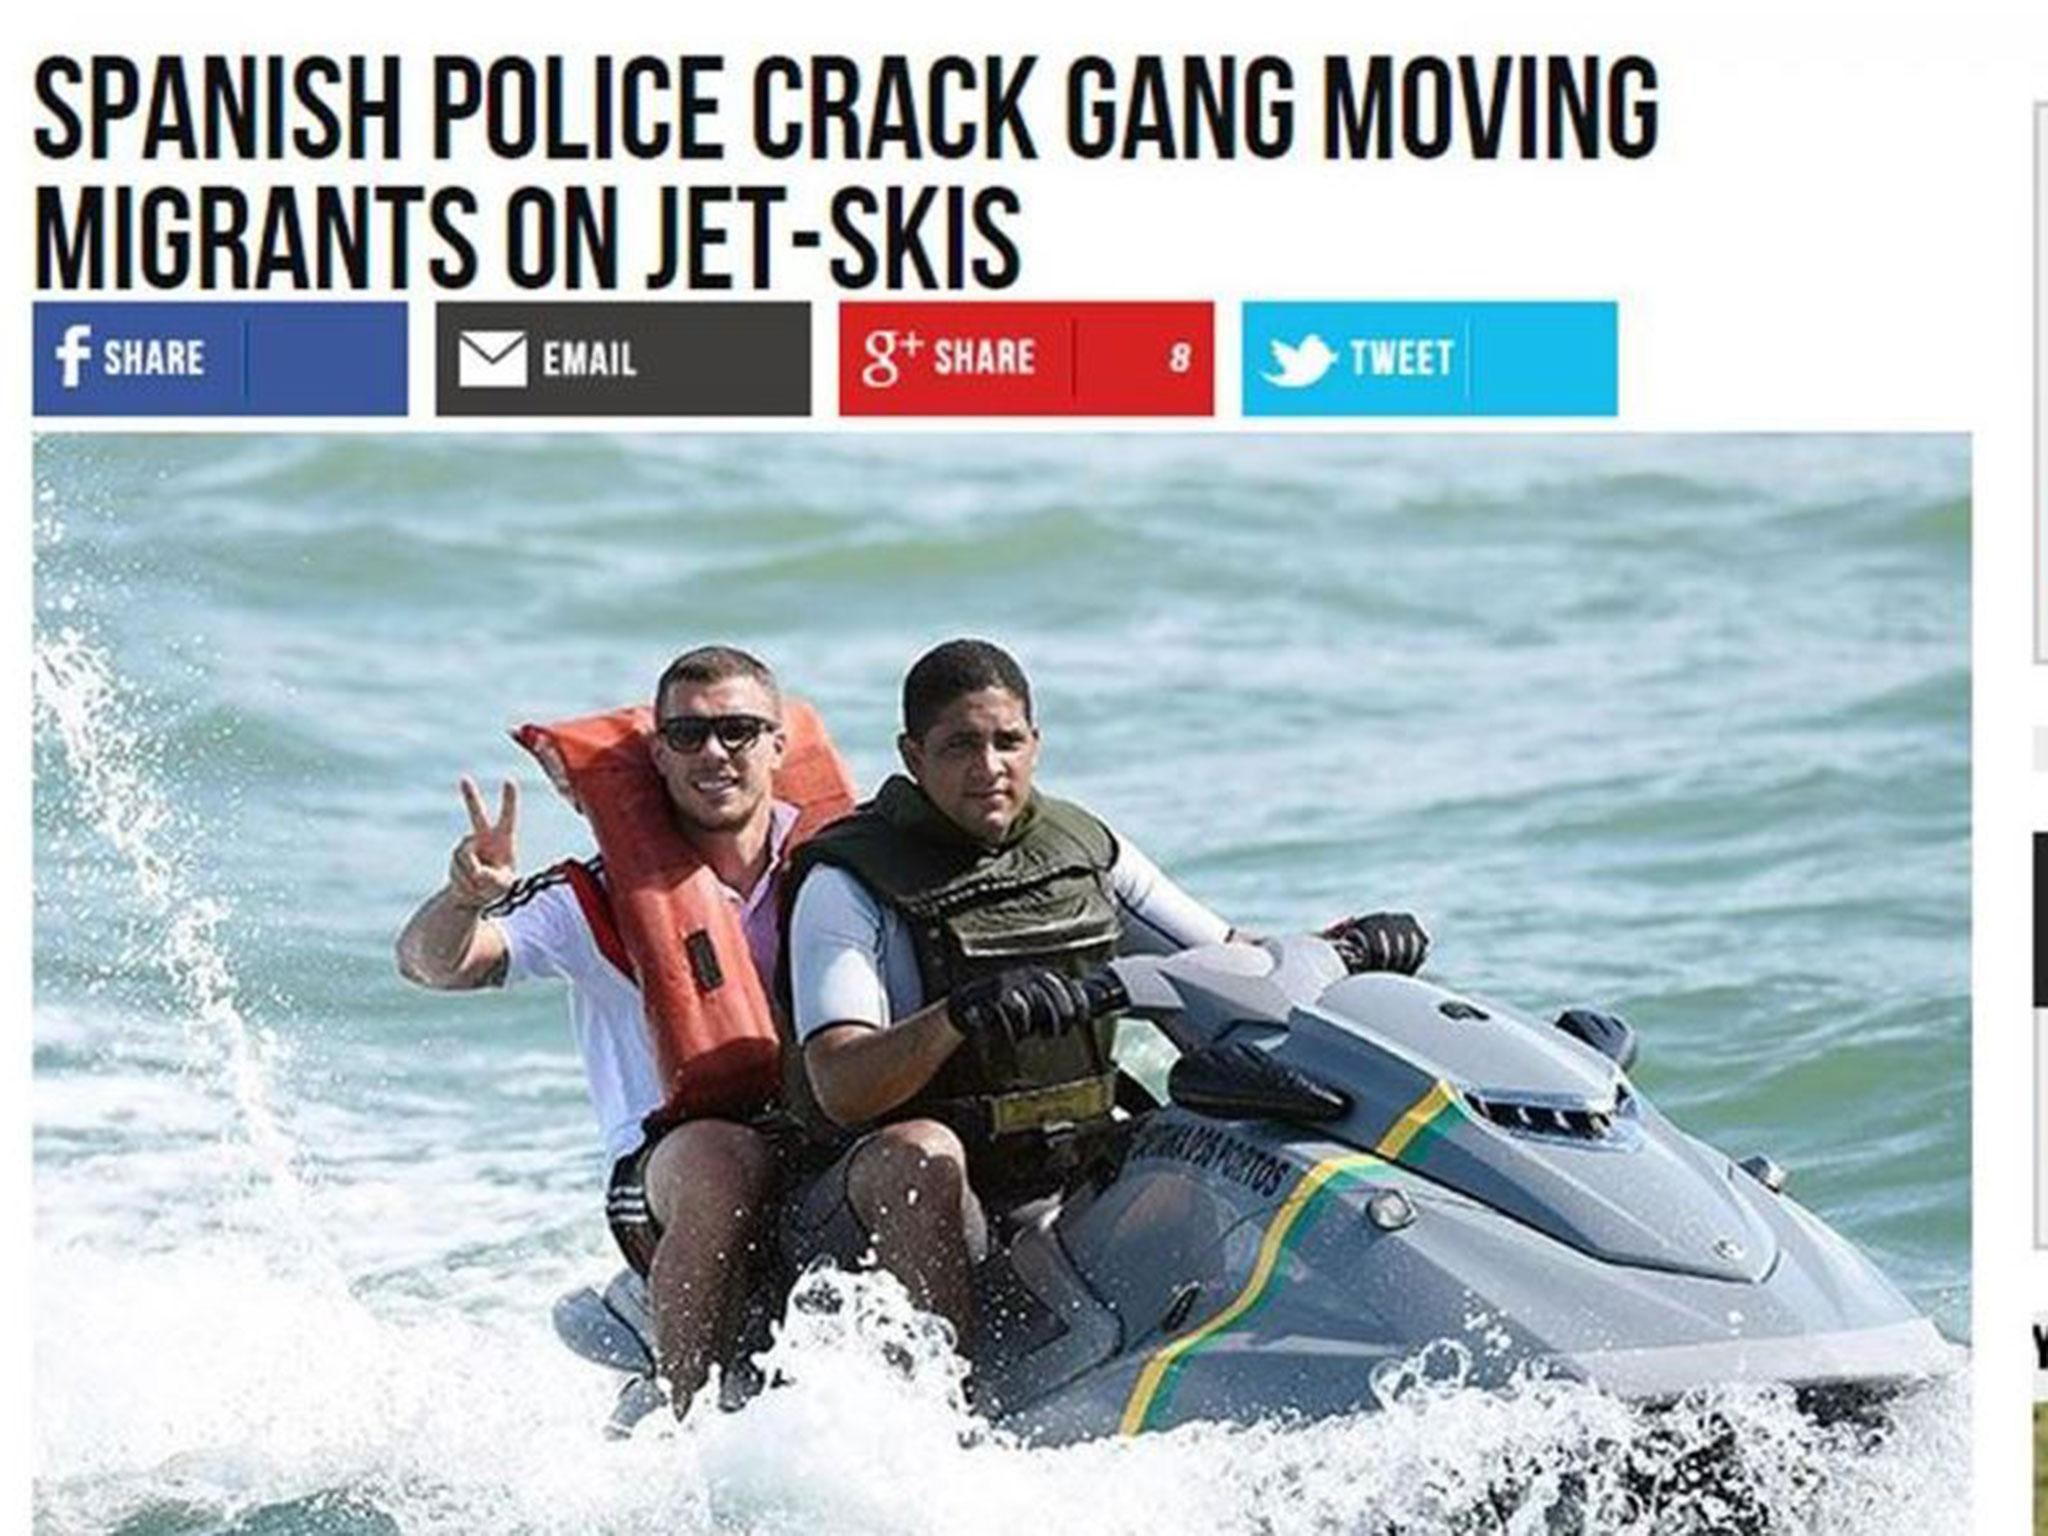 Breitbart apologises after using picture of Lukas Podolski on jet-ski in story about migrant gangs